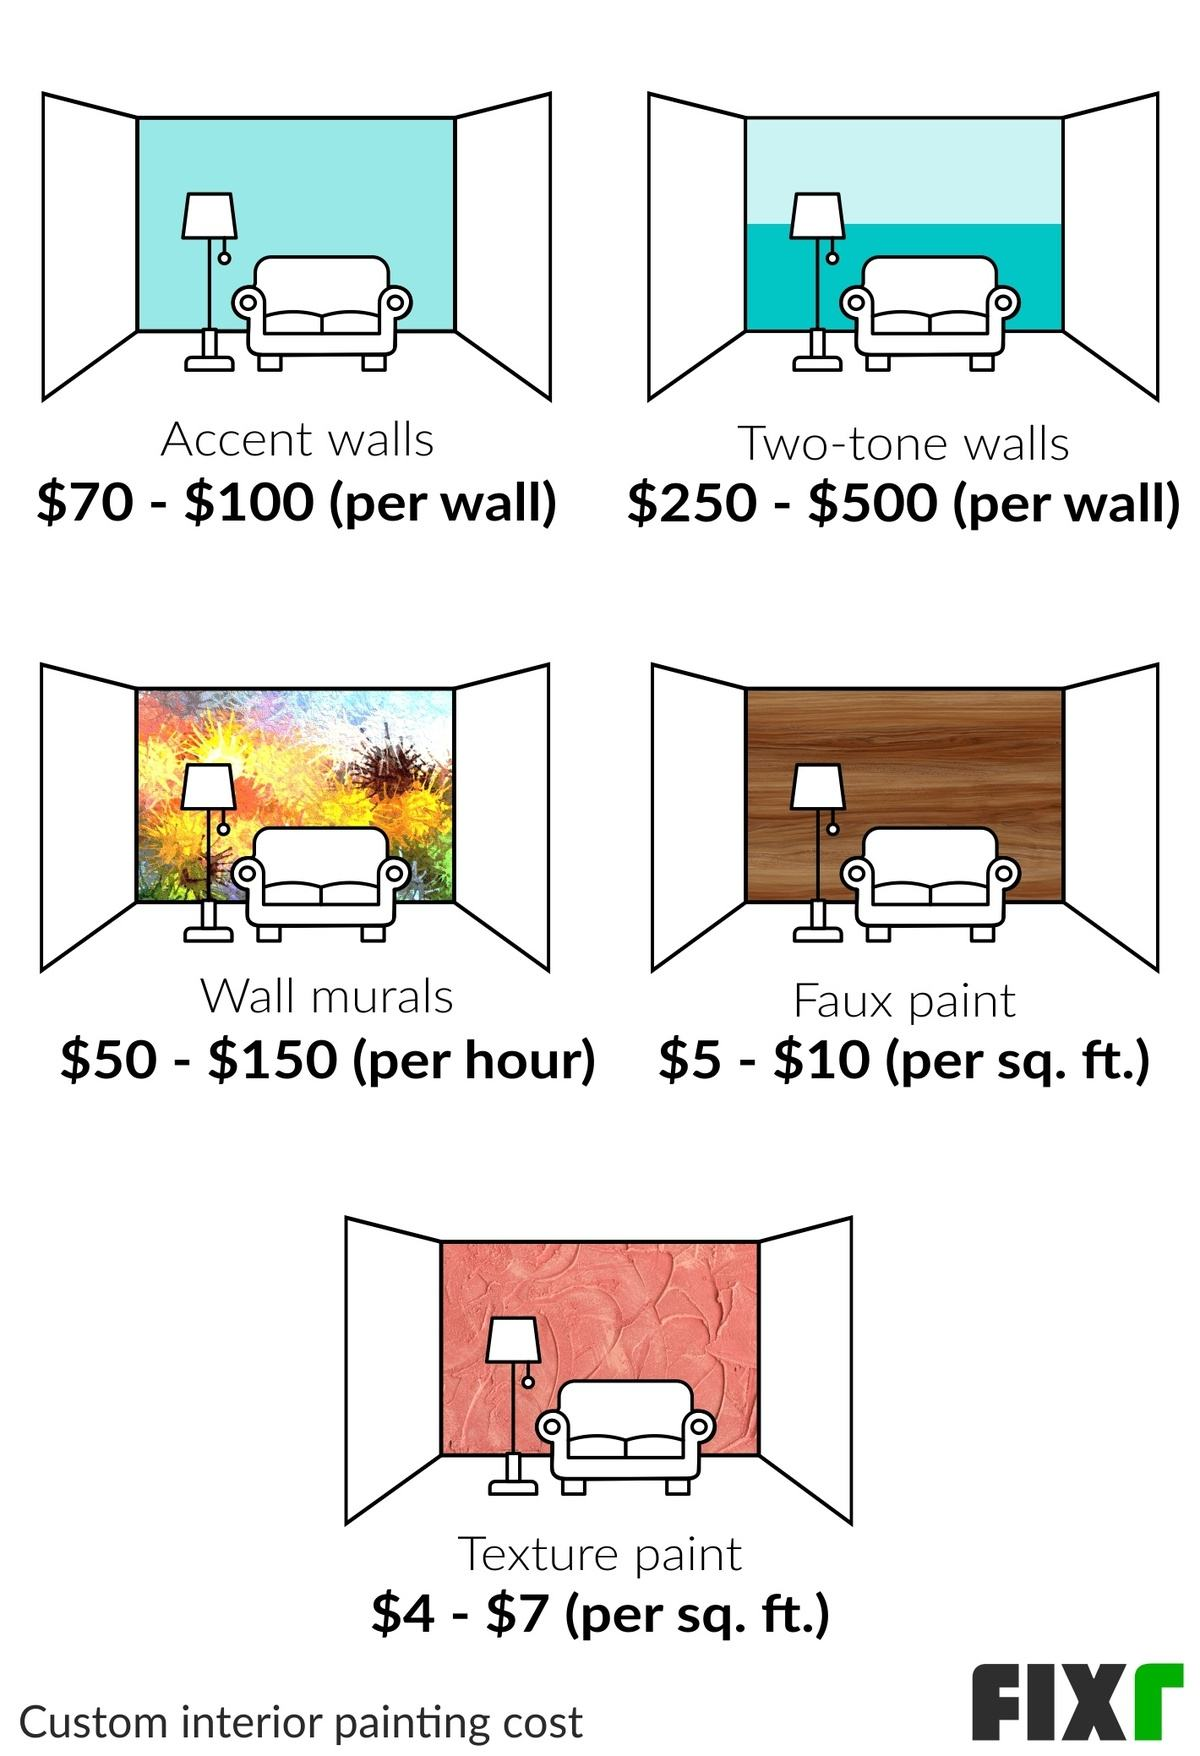 Cost to Custom Paint a Room Using Accent Walls, Two-Tone Walls, Wall Murals, Faux Paint, and Texture Paint